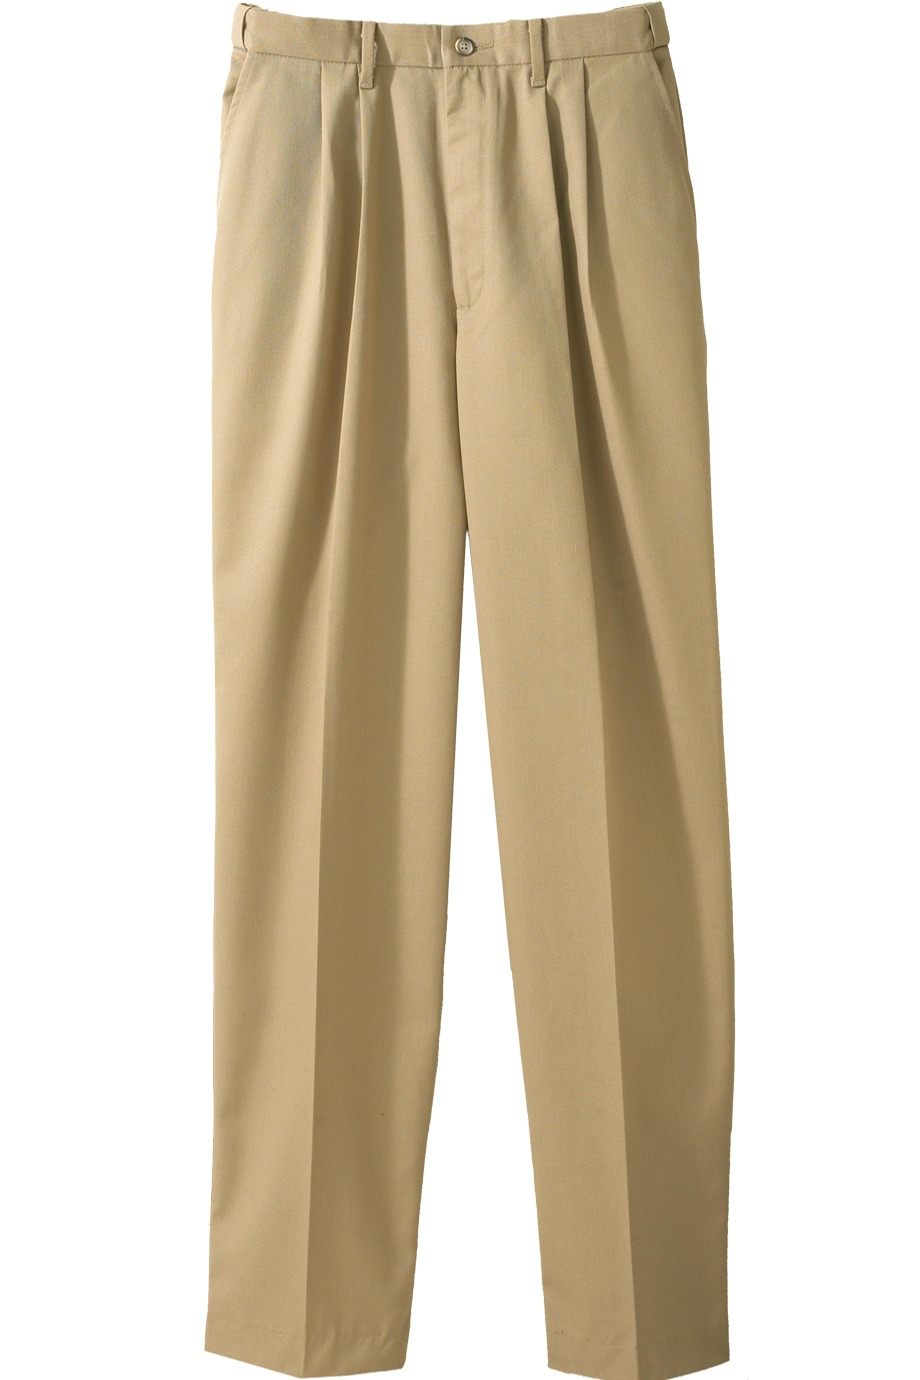 Edwards Garment 2678 - Men's Easy Fit Chino Pleated ...